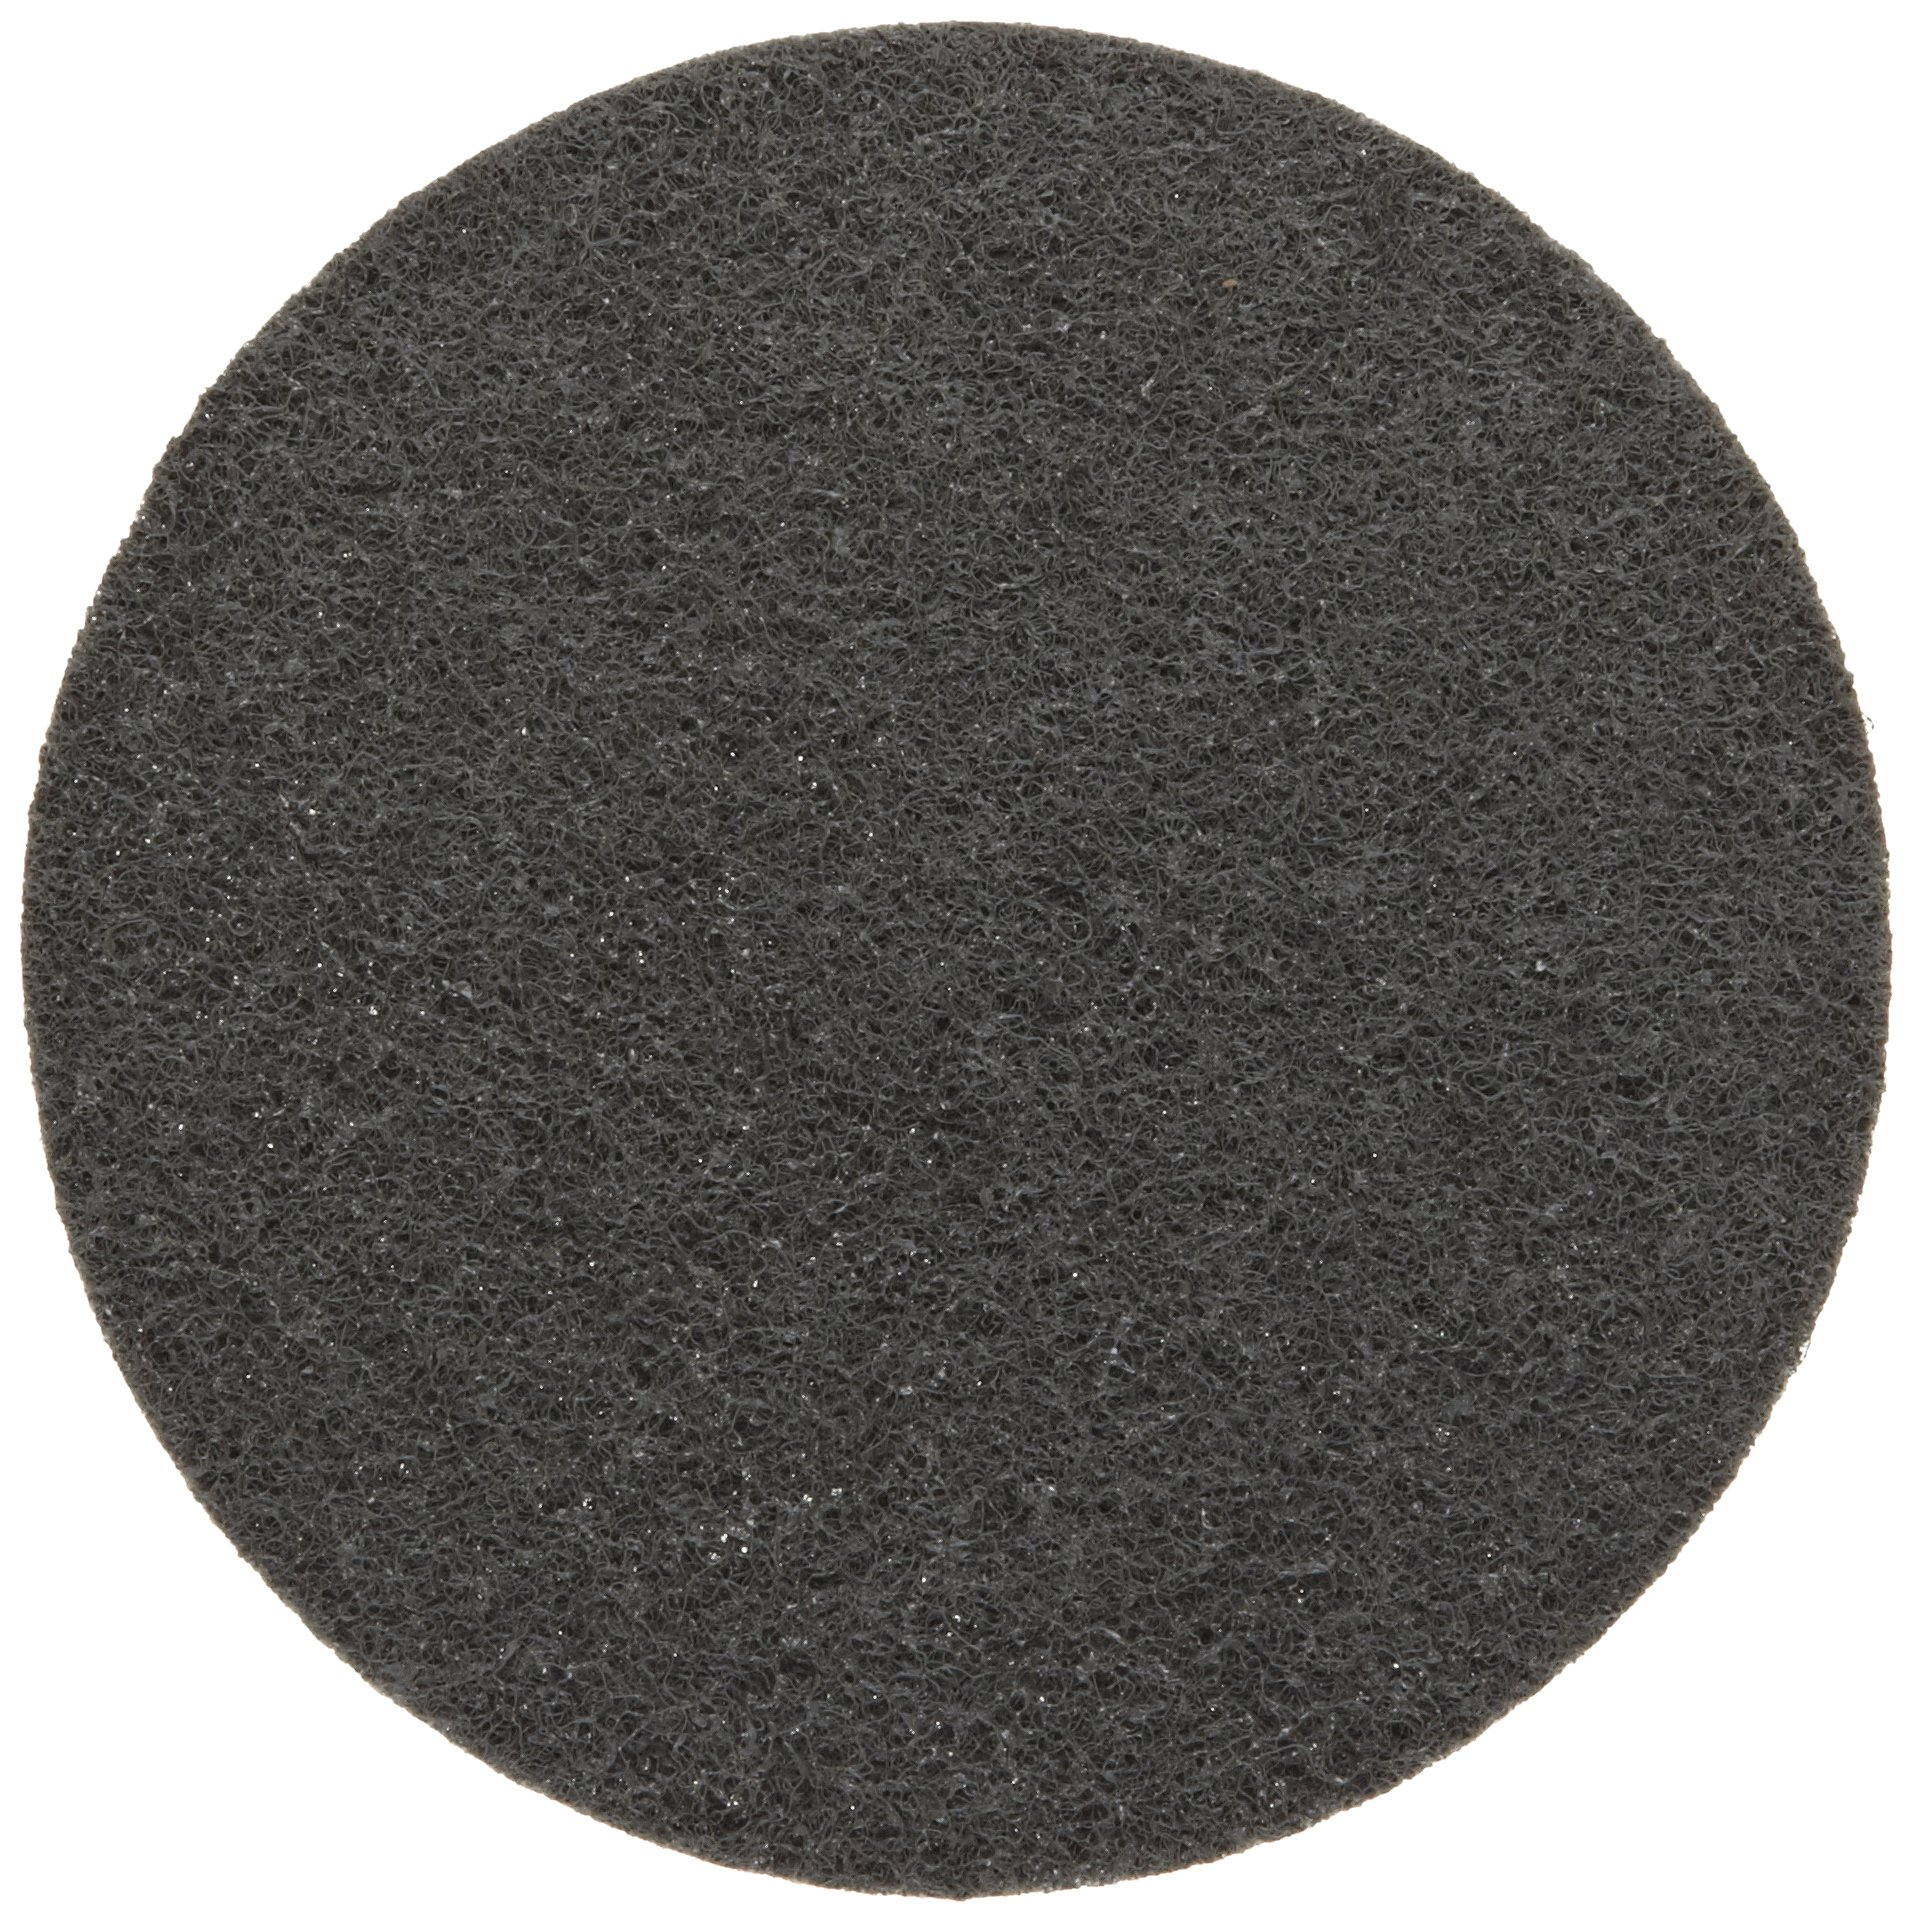 Scotch-Brite(TM) Surface Conditioning Disc, Hook and Loop Attachment, Silicon Carbide, 5 Diameter, S Fine Grit (Pack of 50)